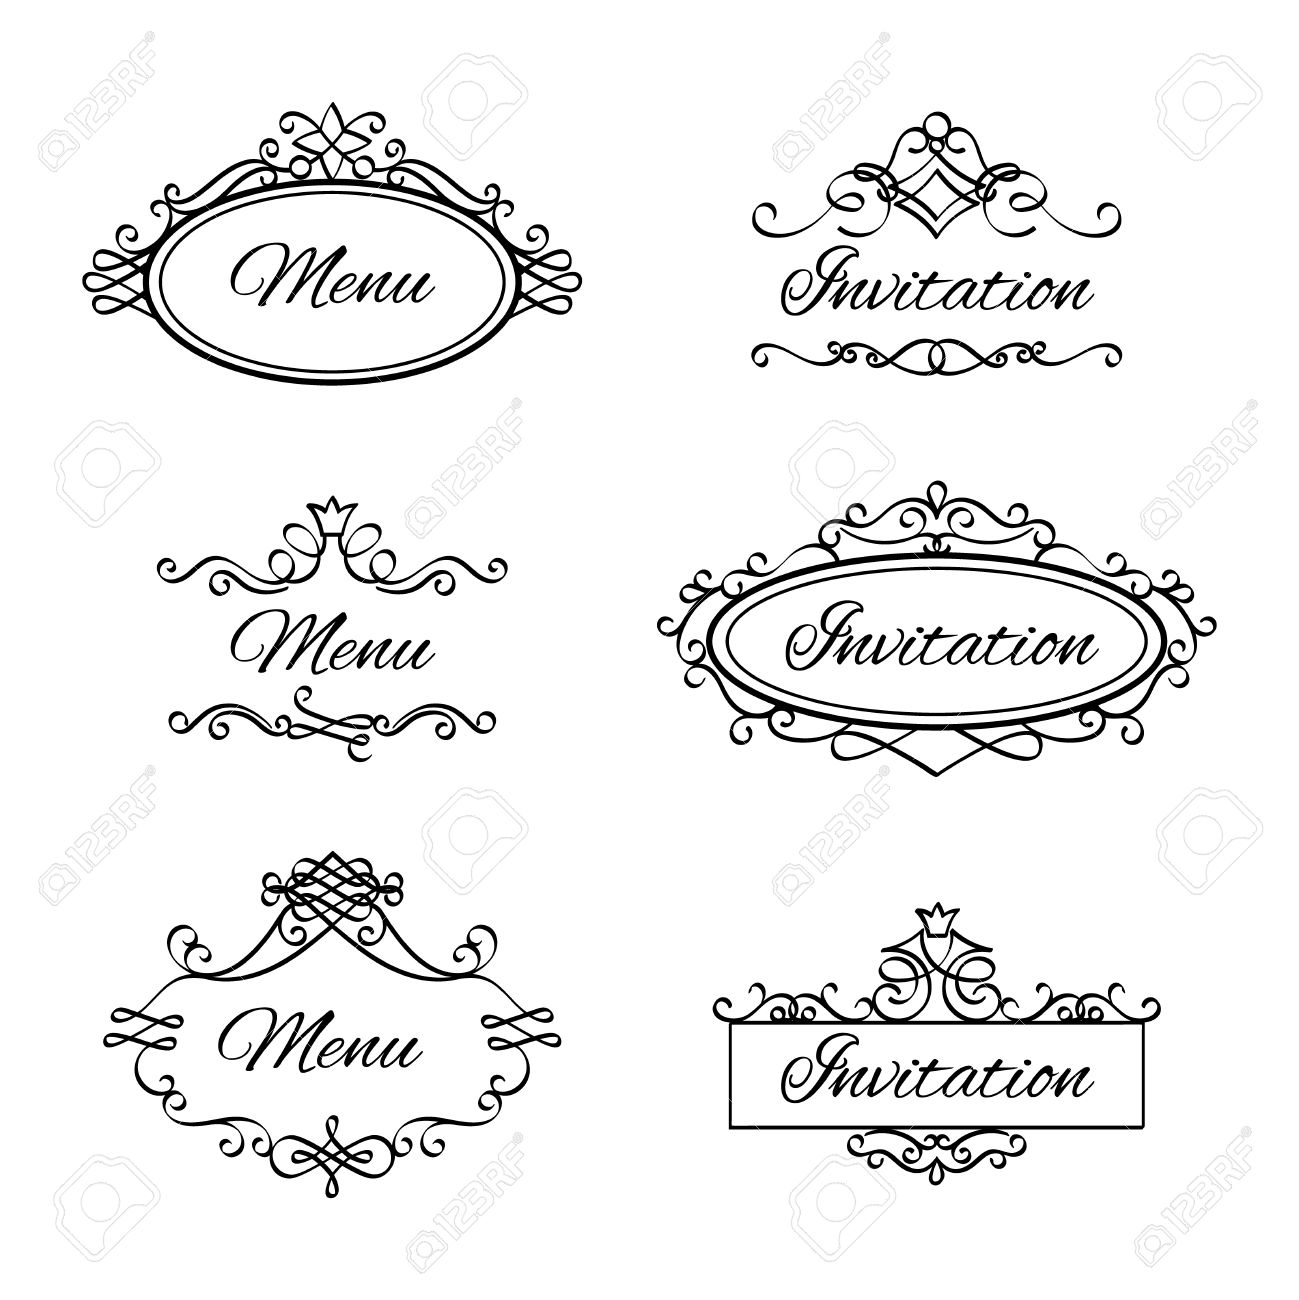 Calligraphic vignettes for menu and flourishes flourishes frames calligraphic vignettes for menu and flourishes flourishes frames for wedding invitation vector illustration stock vector stopboris Images